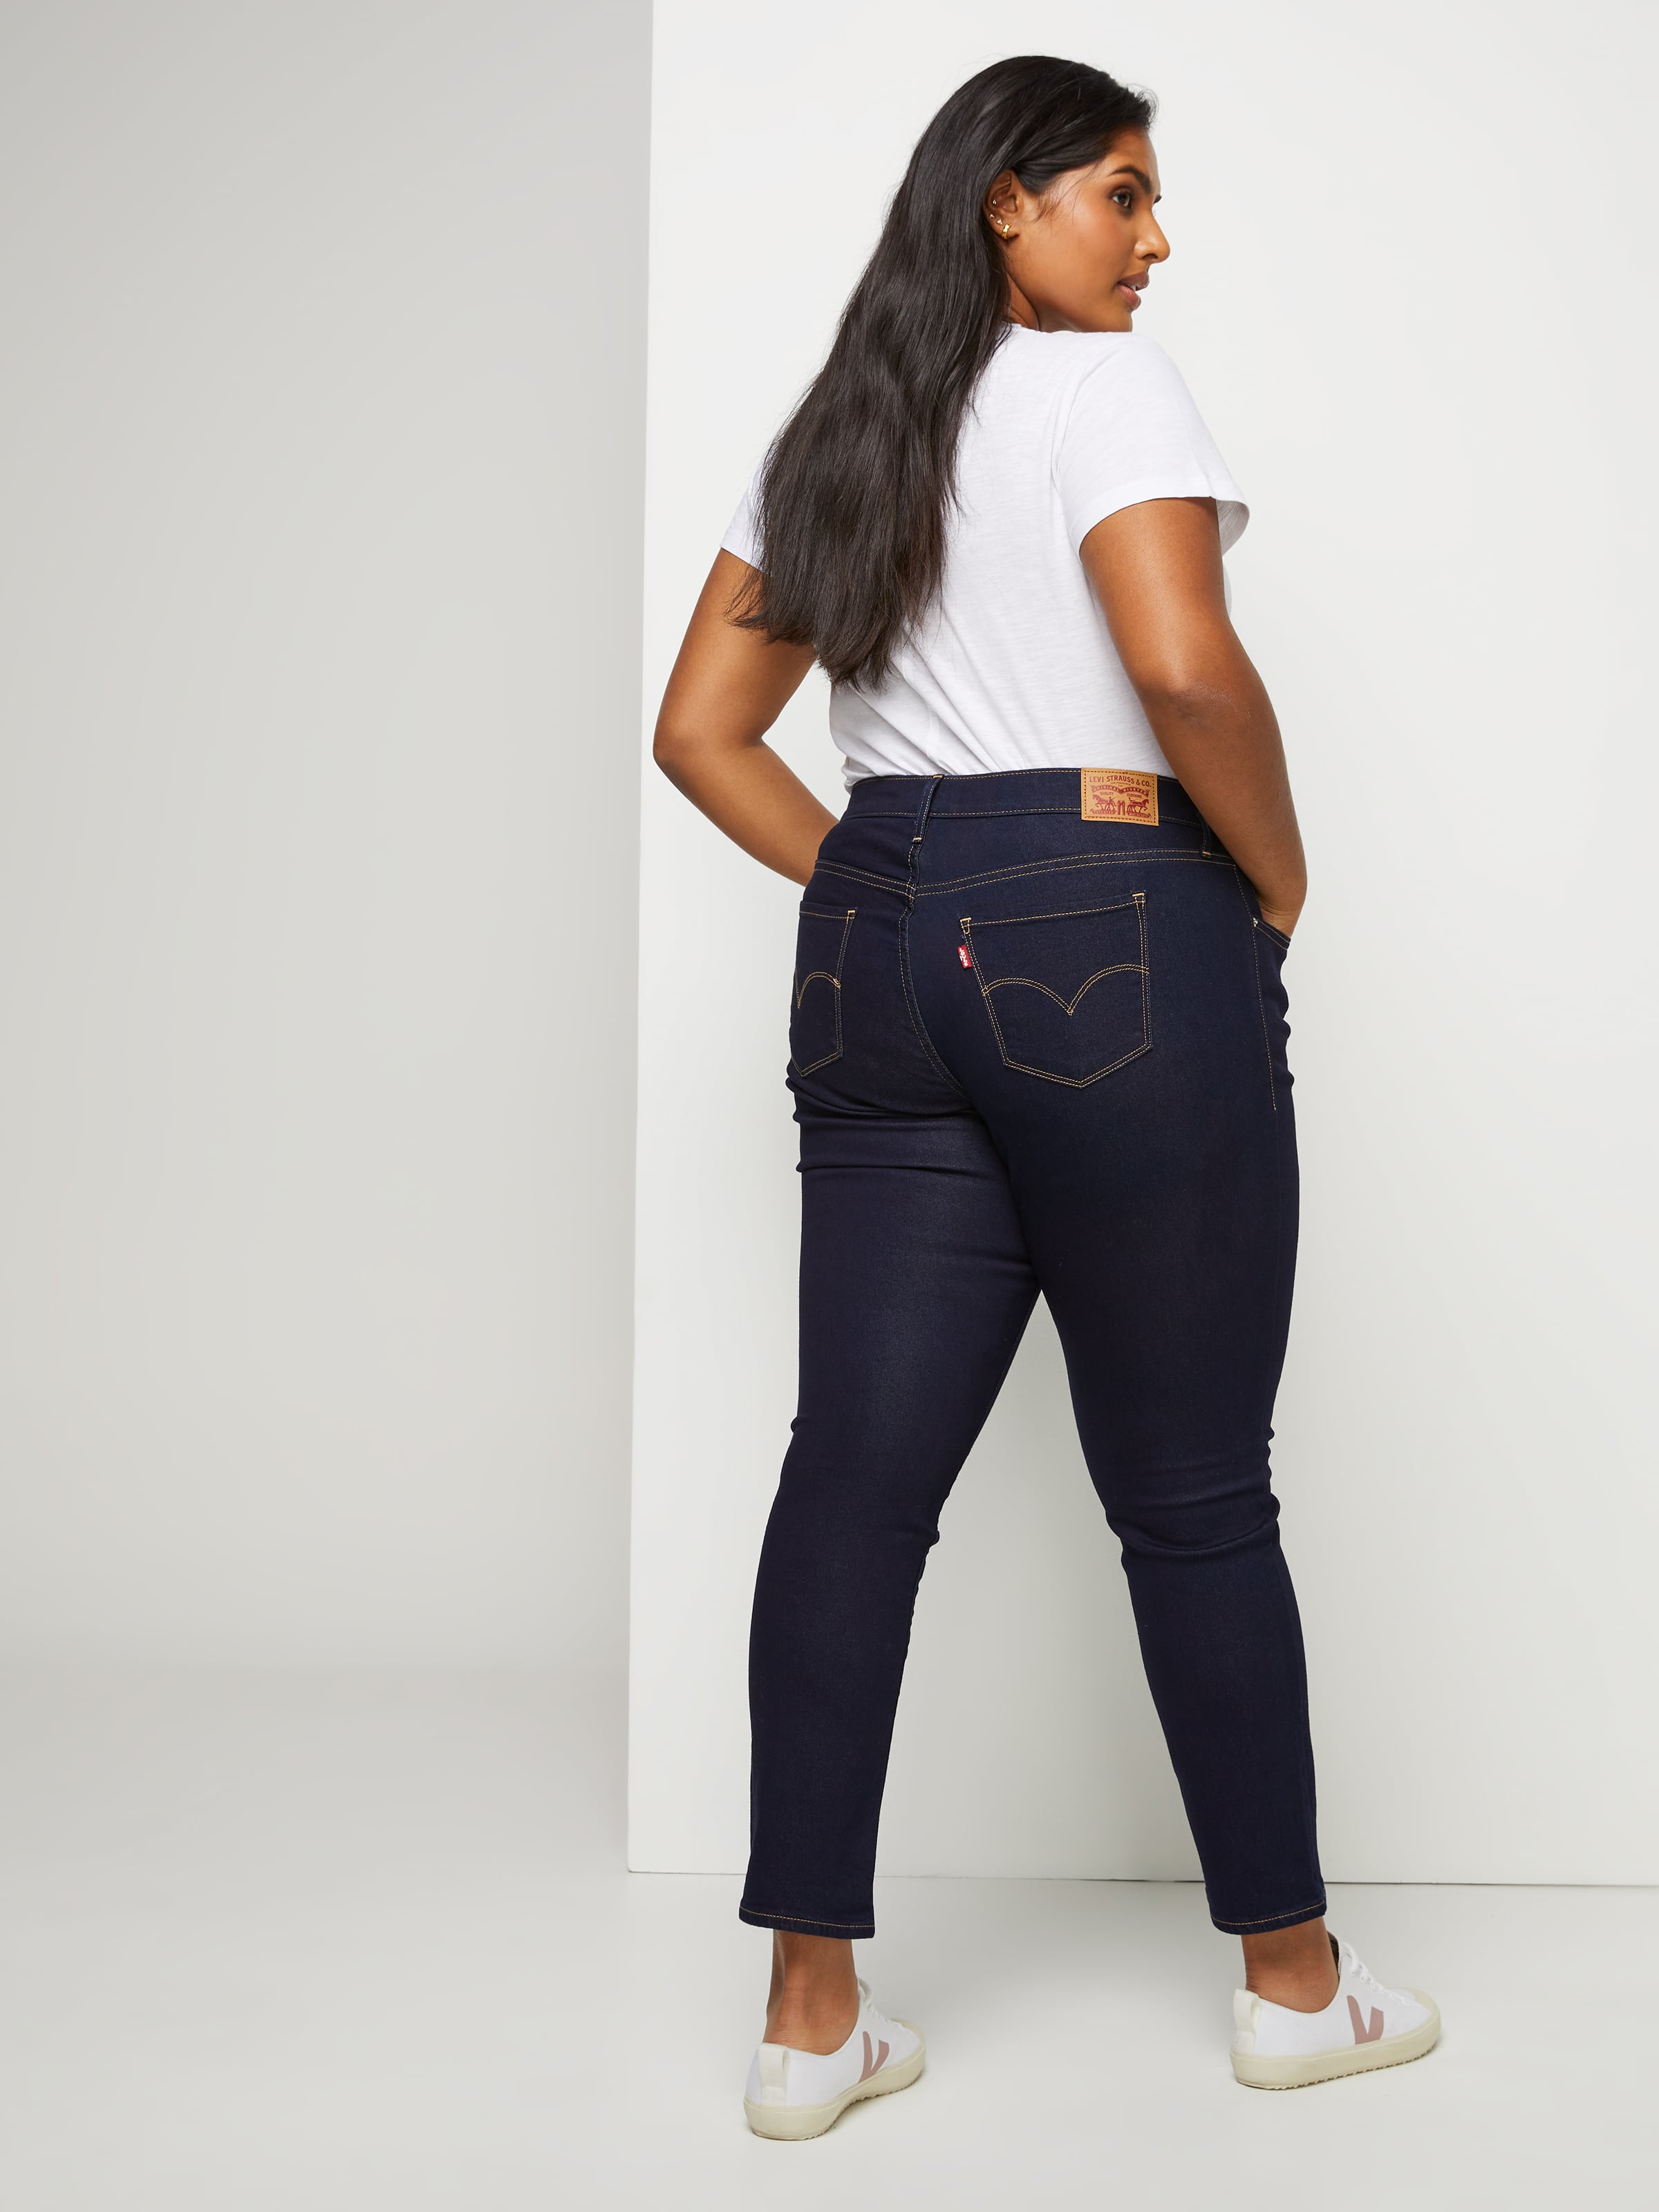 67747312161 Image for Levi s Plus 311 Shaping Skinny Jean In Dark Sky from Just Jeans  ...